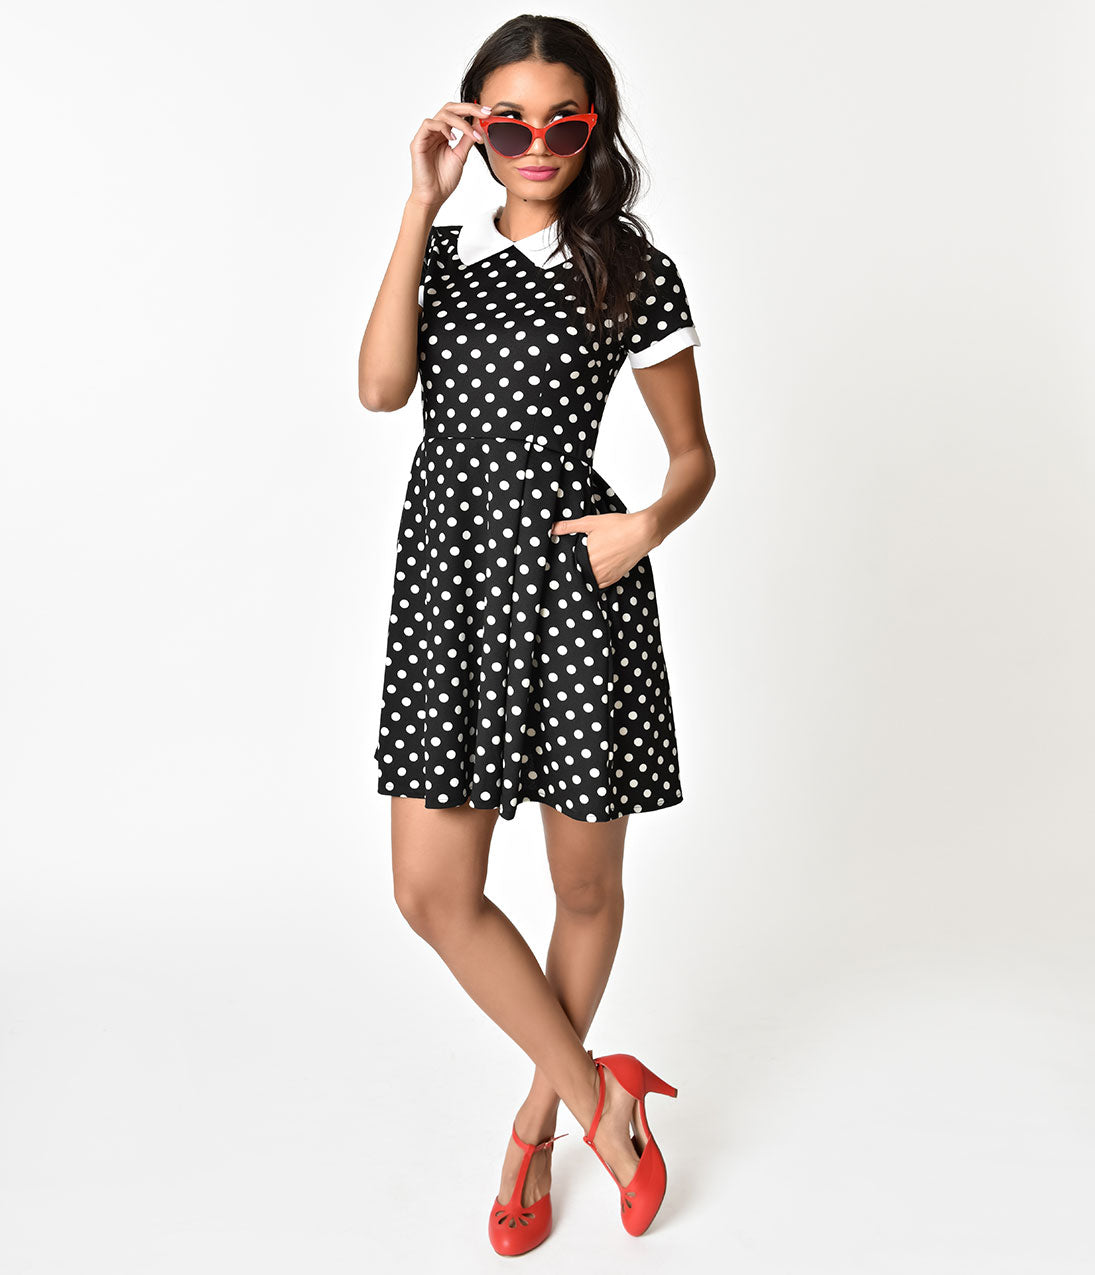 1960s Dresses | 60s Dresses Mod, Mini, Jackie O, Hippie Black  Ivory Polka Dot Fit  Flare Short Sleeve Dress $78.00 AT vintagedancer.com